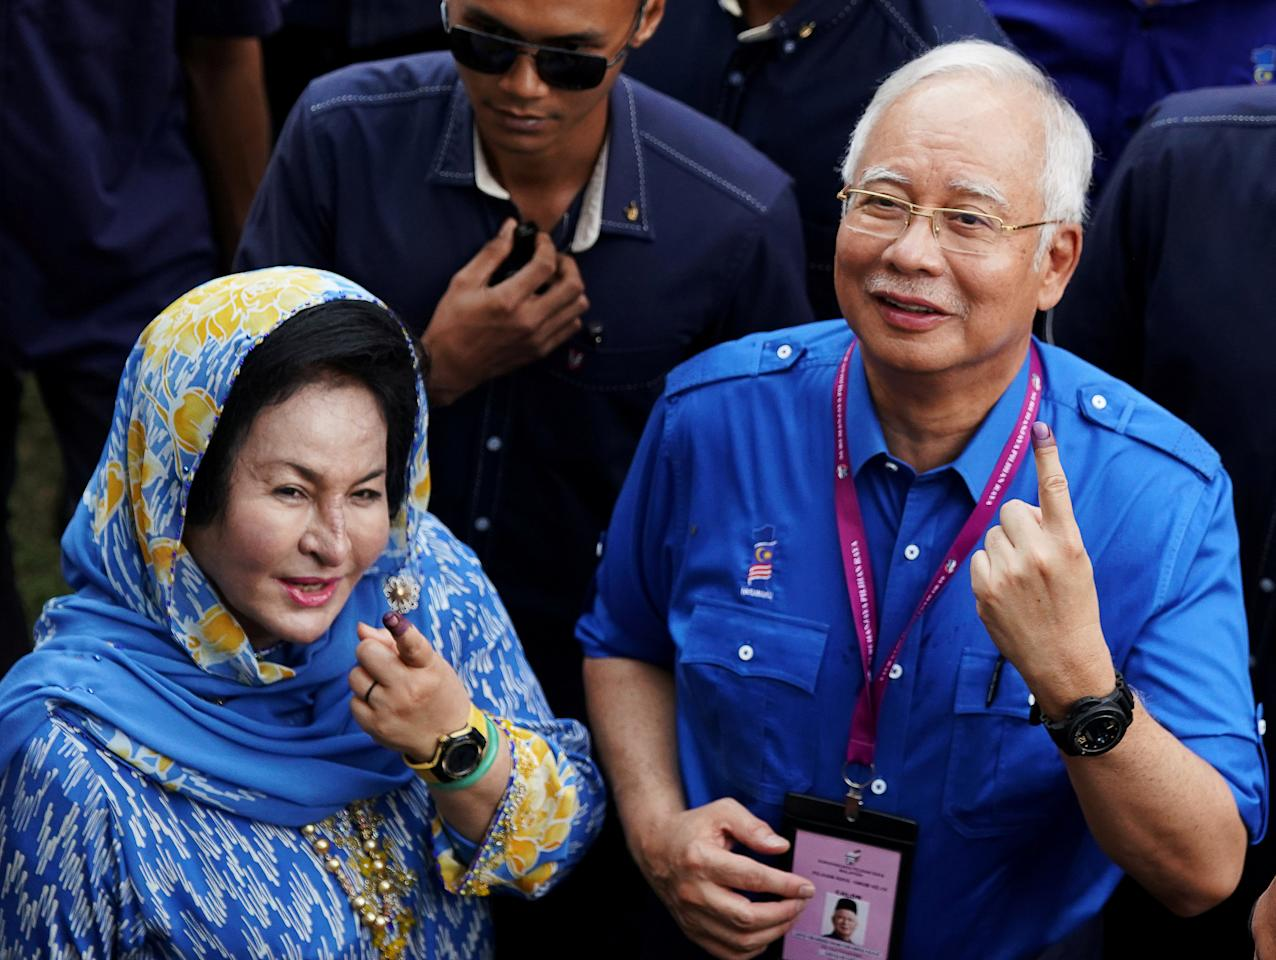 FILE PHOTO: Malaysia's Prime Minister Najib Razak of Barisan Nasional (National Front) and his wife Rosmah Mansor show their ink-stained fingers after voting in Malaysia's general election in Pekan, Pahang, Malaysia, May 9, 2018. REUTERS/Athit Perawongmetha/File Photo